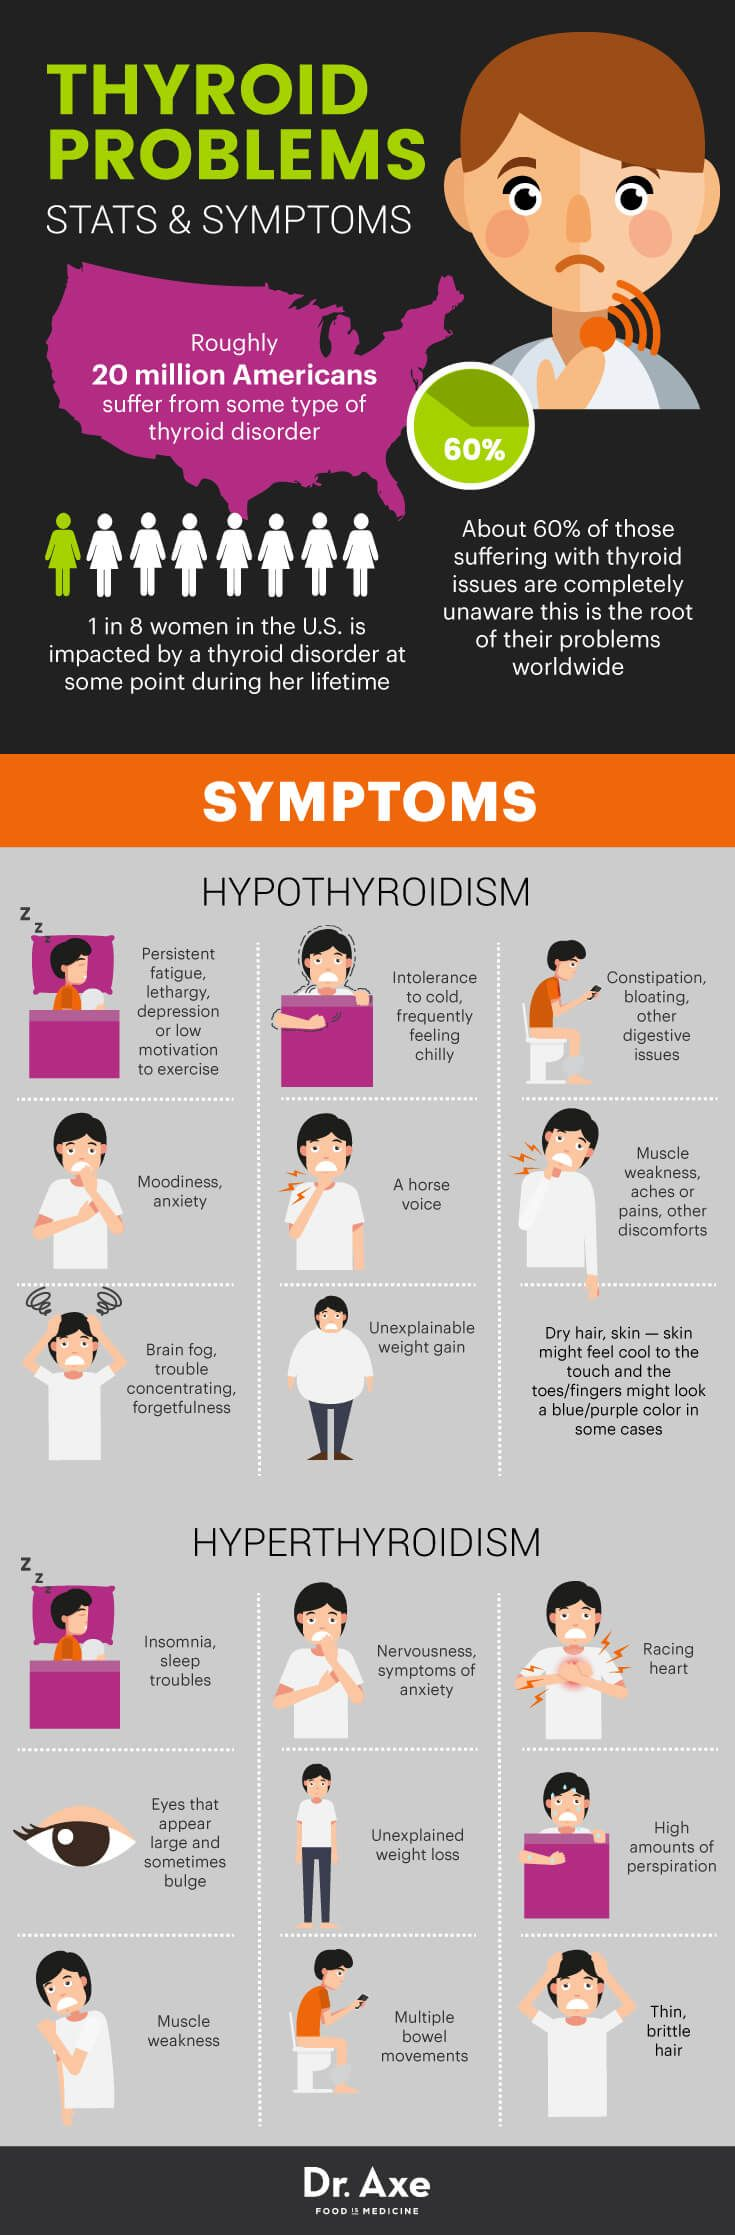 Symptoms of Thyroid Problems & Remedies That Help - Dr. Axe